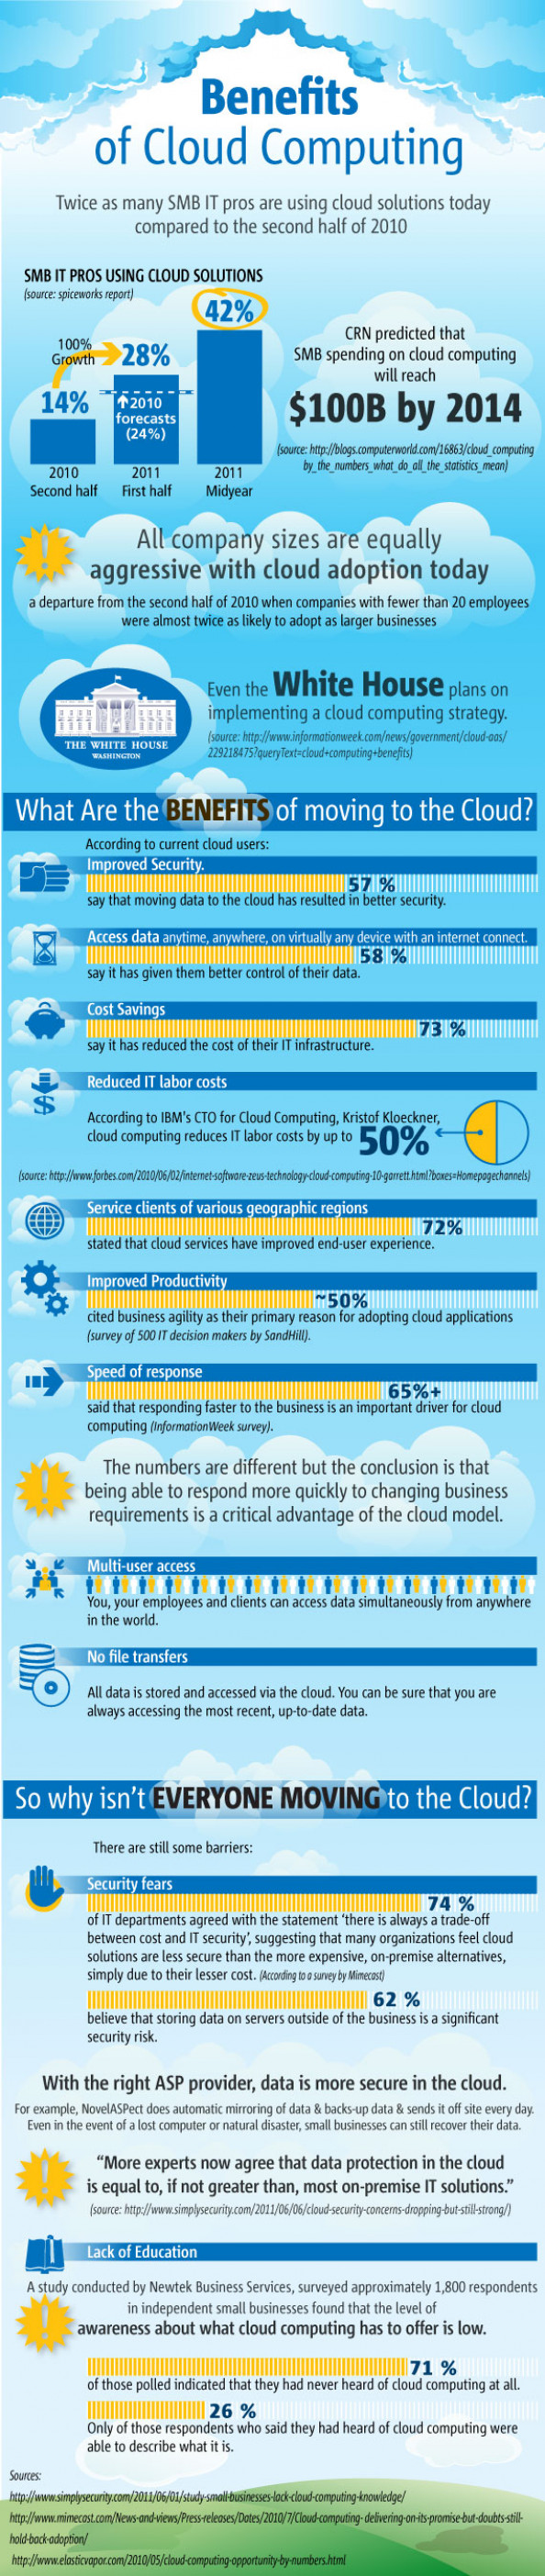 7 Benefits of Cloud Computing for Small Business Infographic